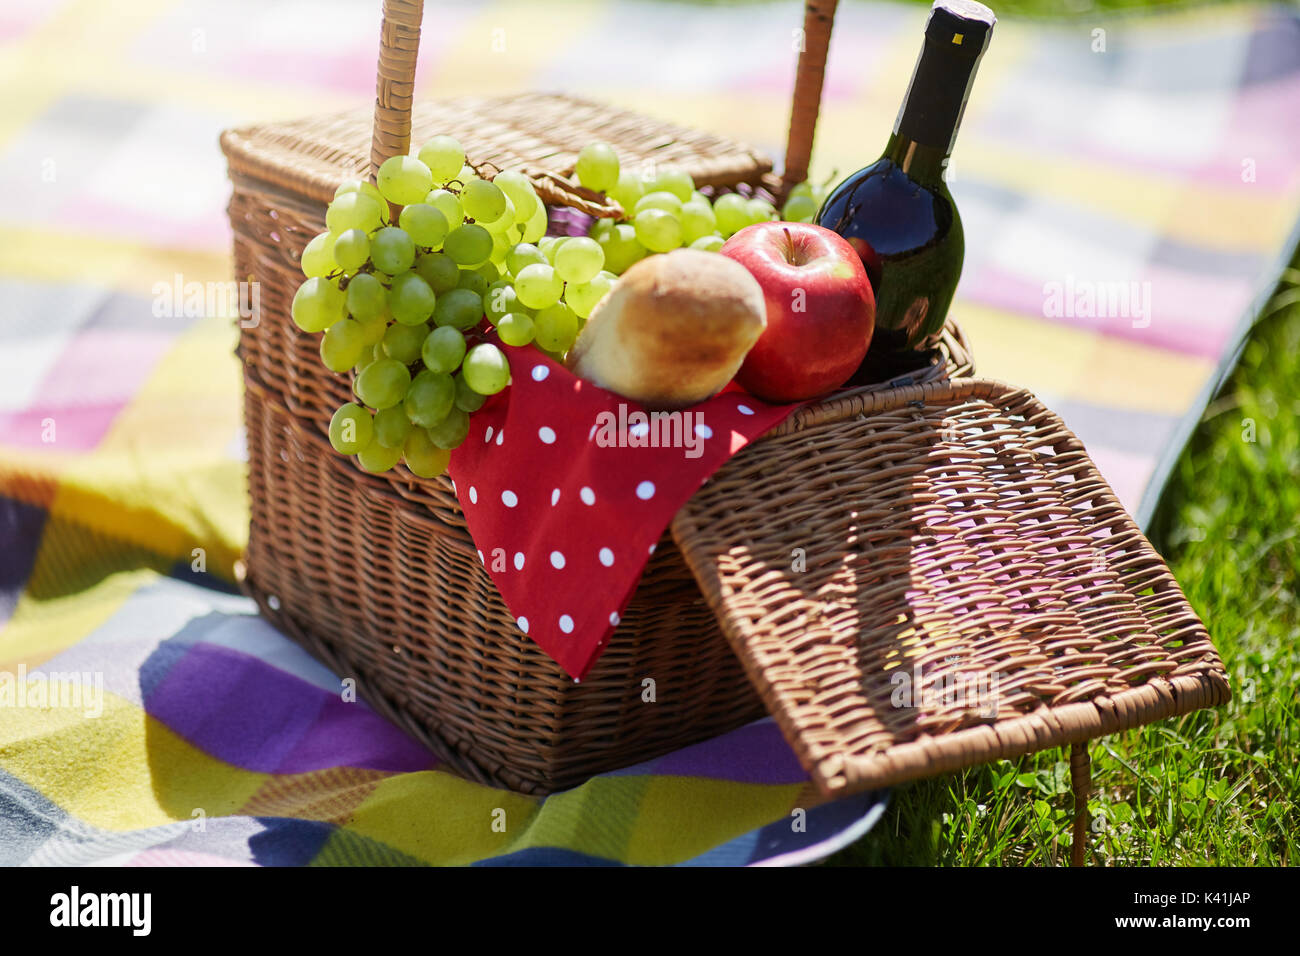 A photo of picnic basket standing on the blanket. It's filled with fruits, bread and wine. - Stock Image